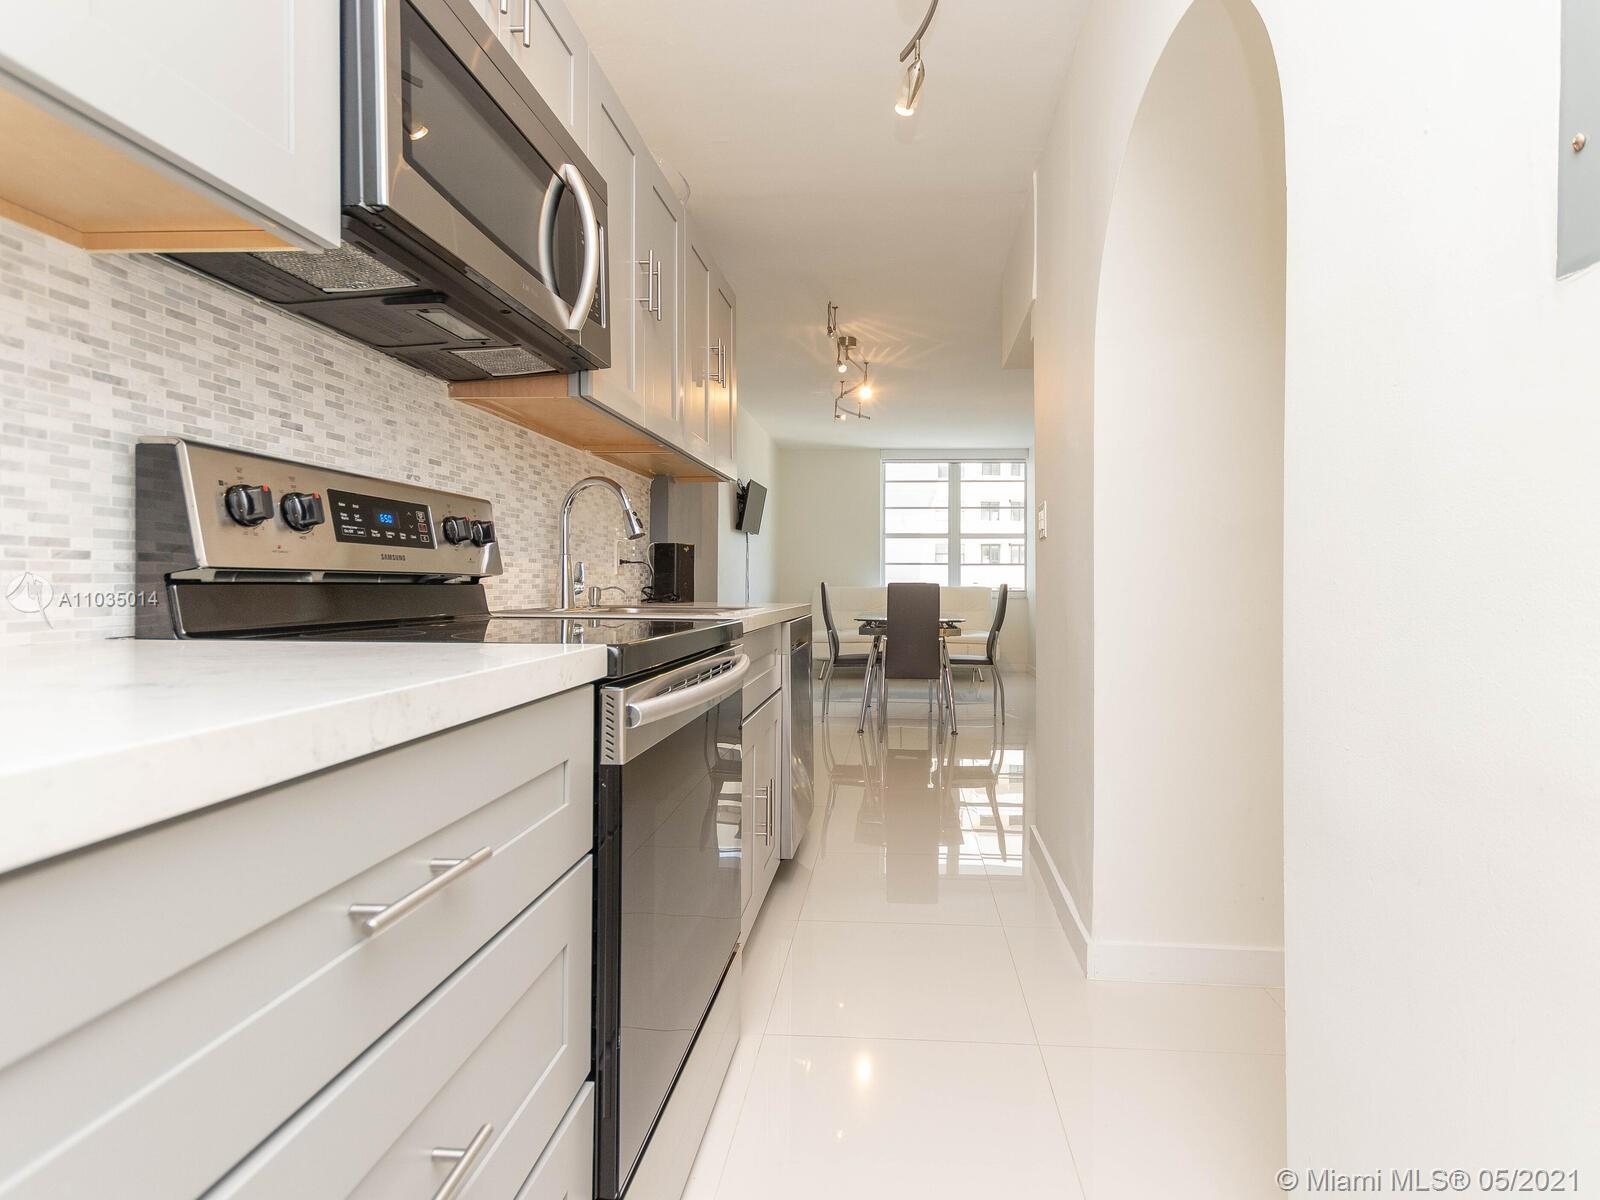 FULLY RENOVATED, BEAUTIFUL 1-Bedroom Unit in Decoplage Condo. Well divided apartment with all new ki